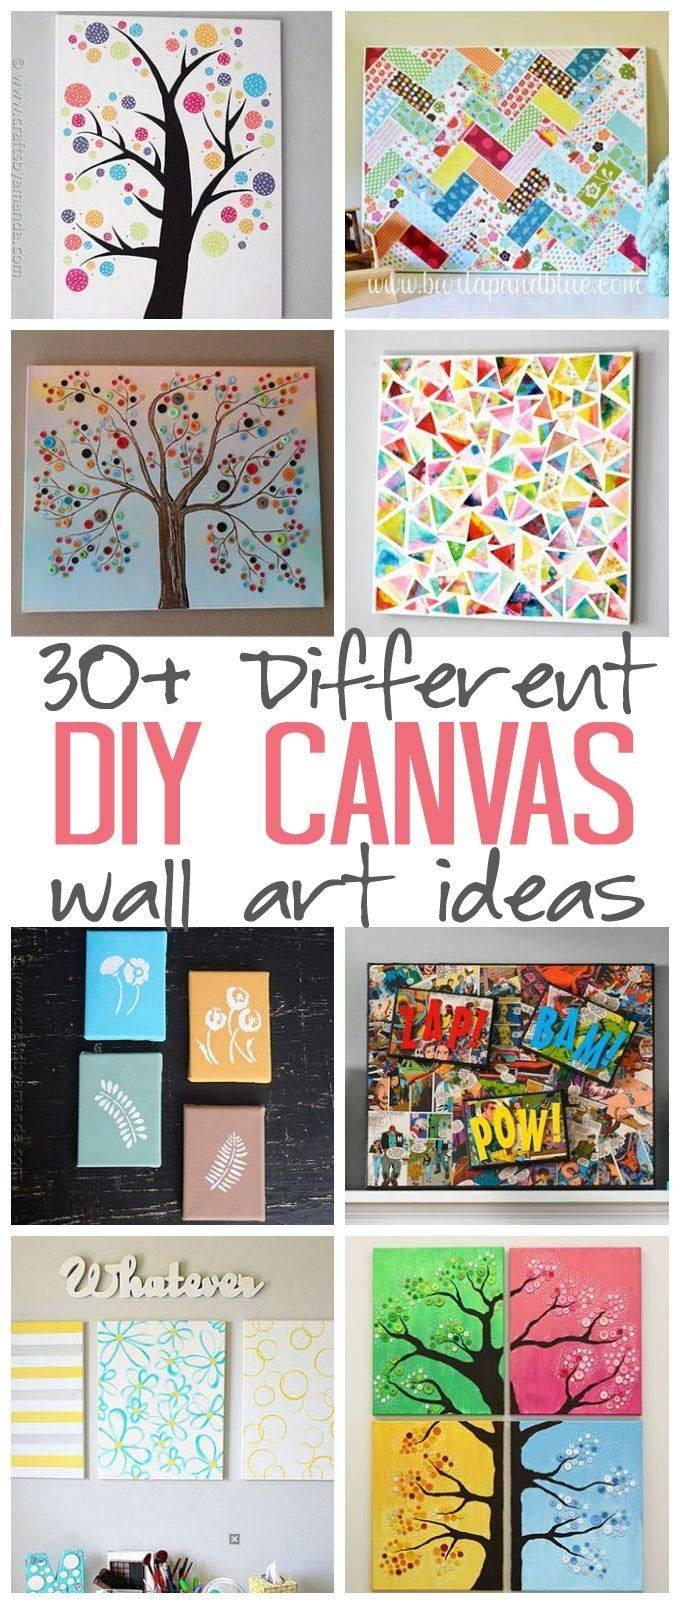 25+ Unique Canvas Wall Art Ideas On Pinterest | Diy Canvas Art Regarding Newest Pinterest Diy Wall Art (View 2 of 25)